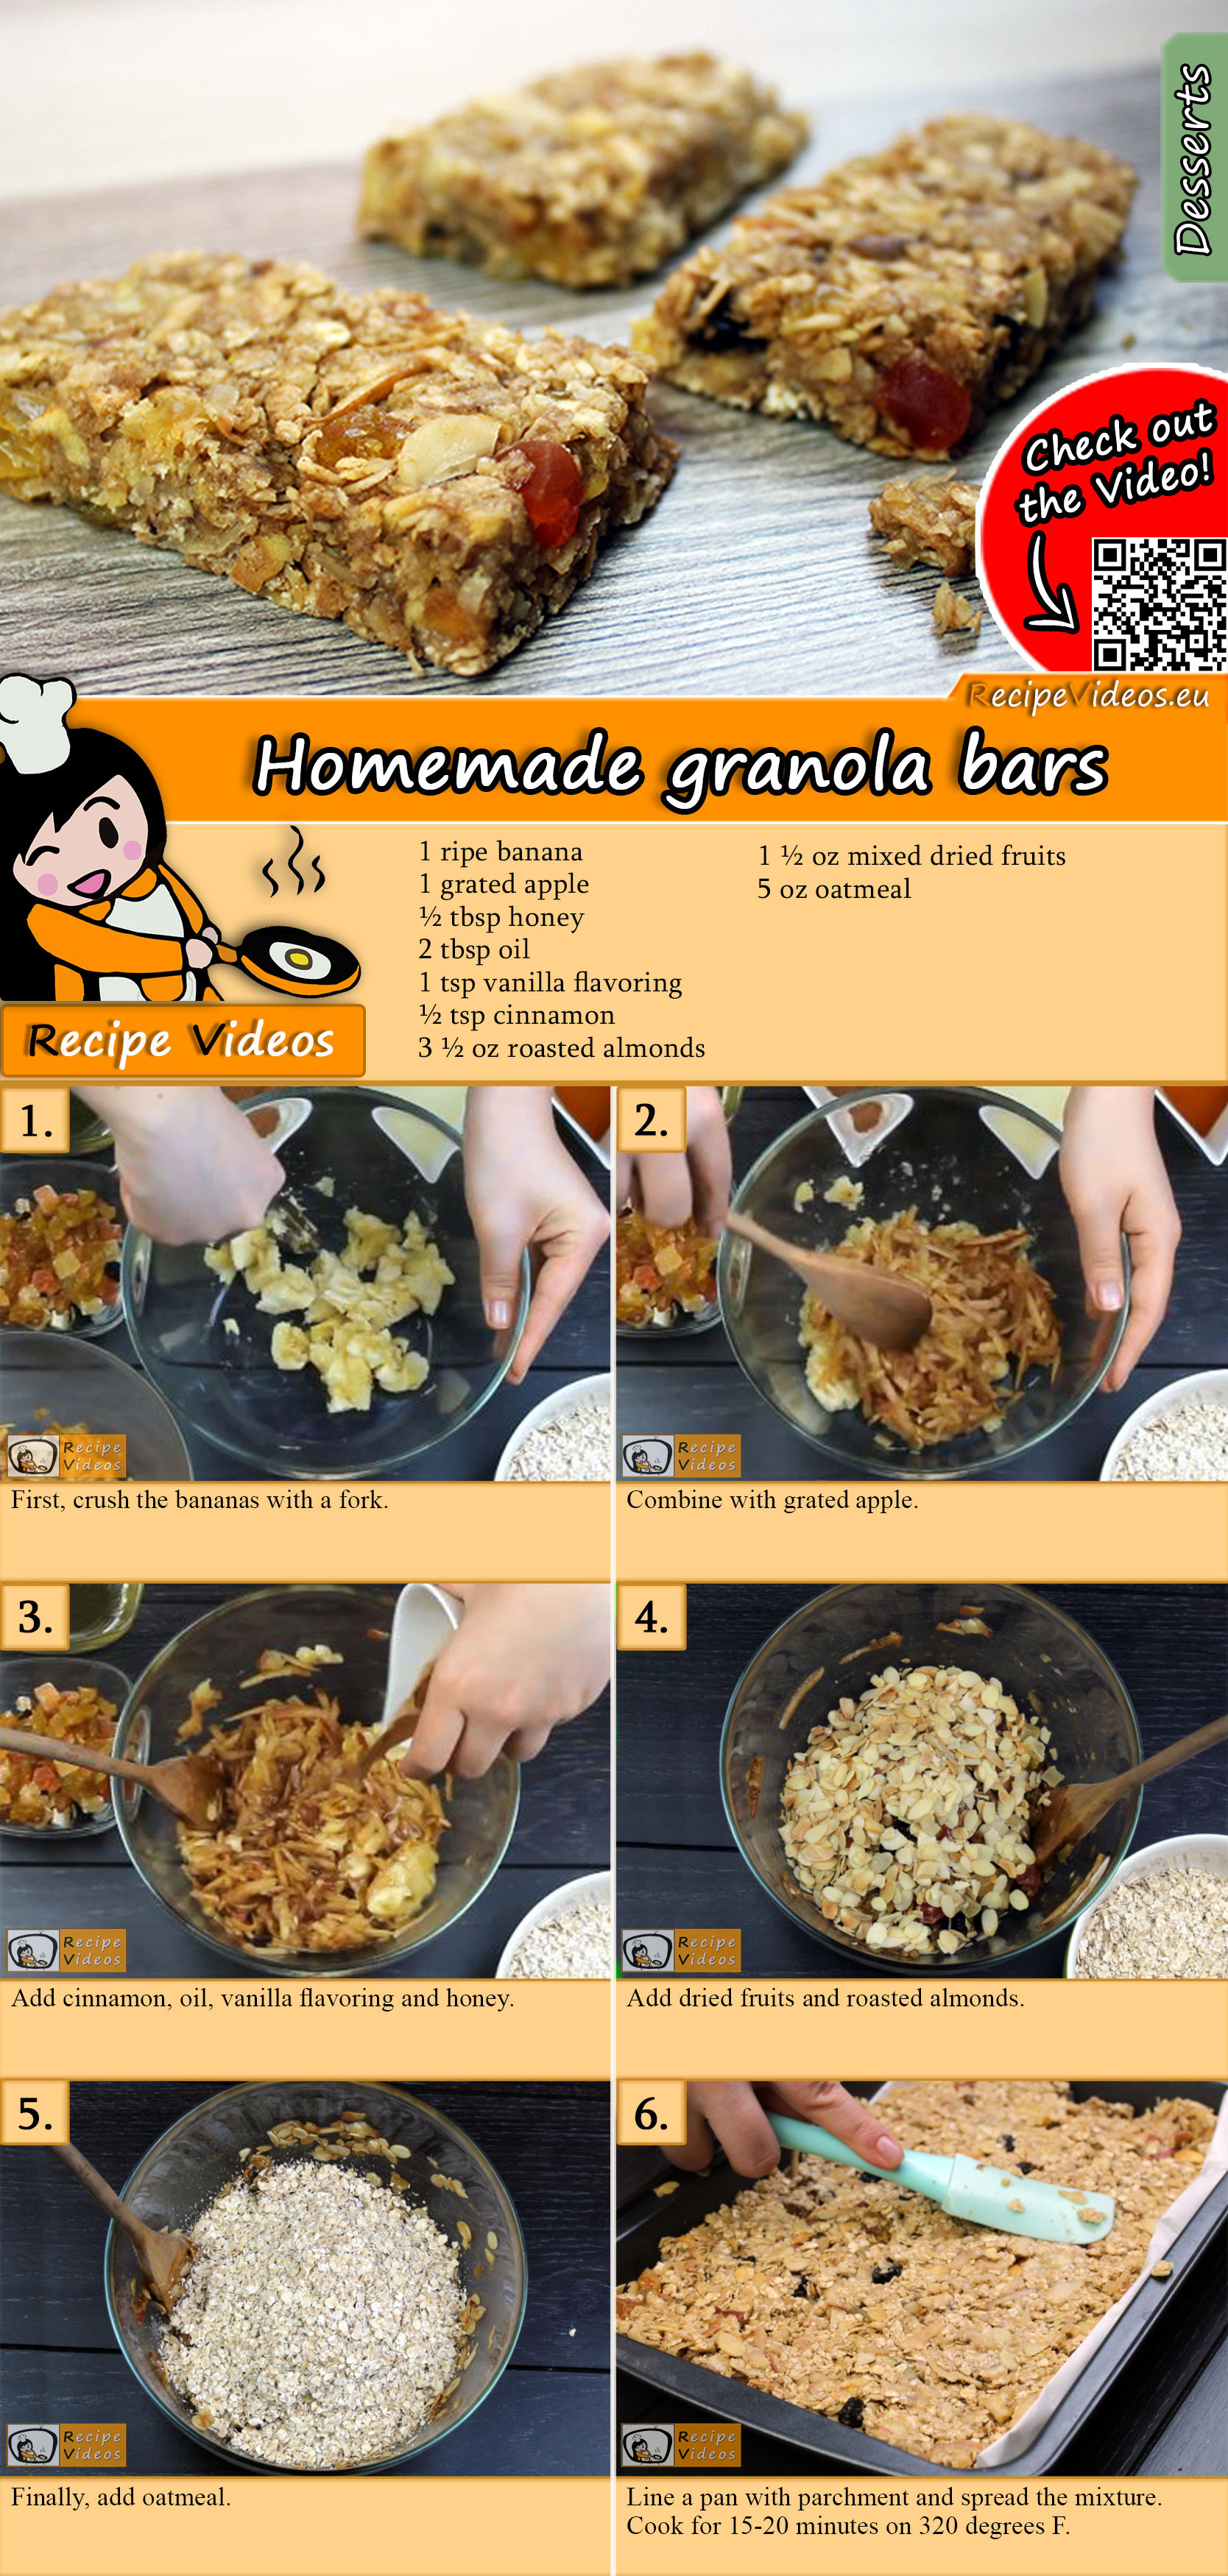 Homemade granola bars recipe with video